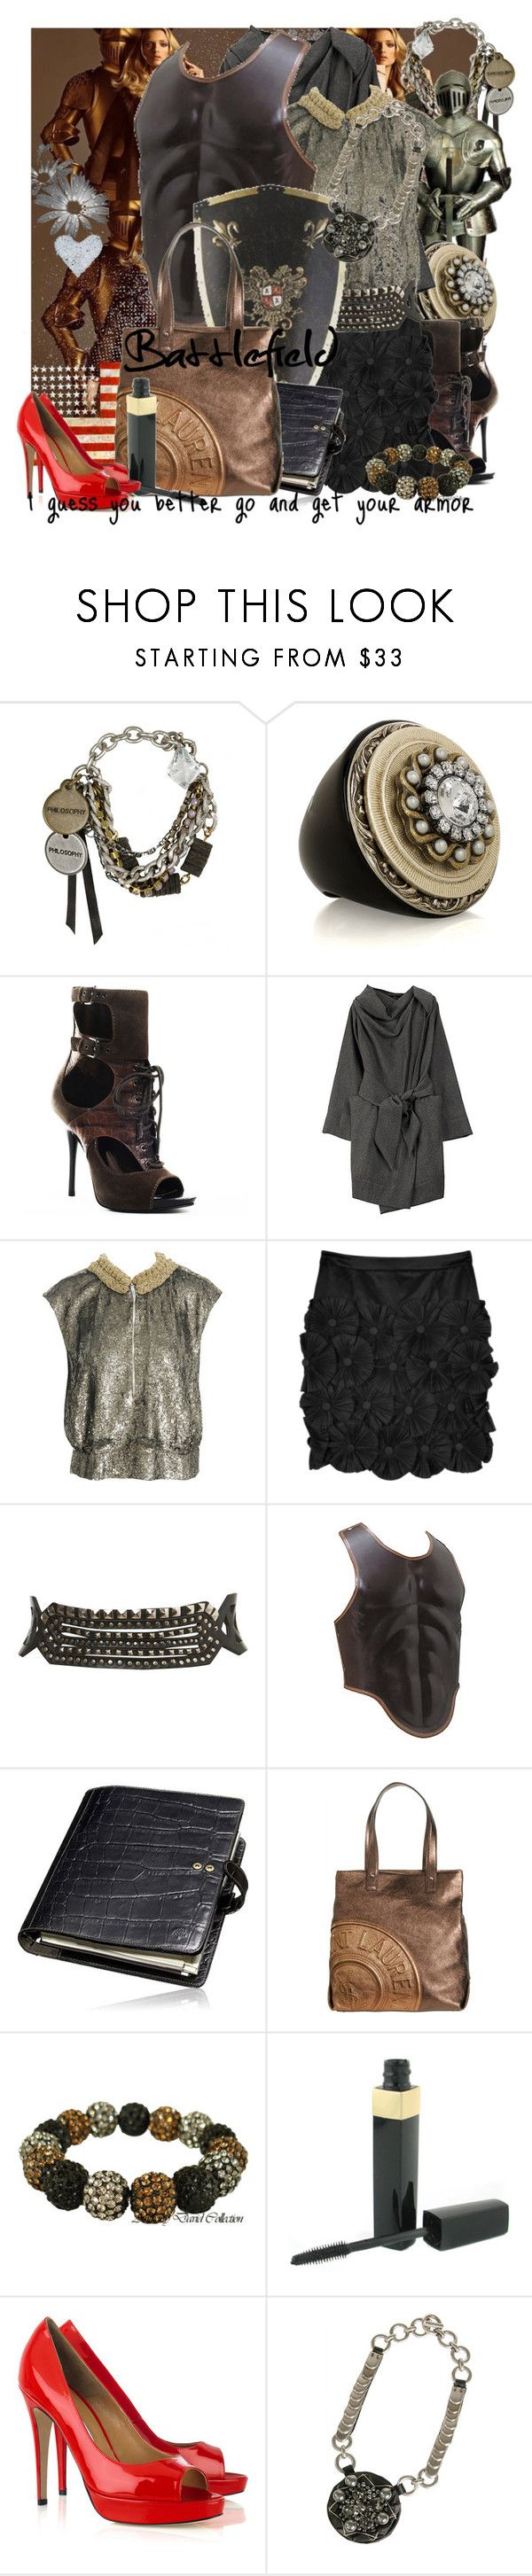 """""""BattleField"""" by emilyliz ❤ liked on Polyvore featuring Philosophy di Alberta Ferretti, Rings Eclectic, Marciano, Vivienne Westwood Anglomania, Dries Van Noten, By Malene Birger, Miss Selfridge, Mulberry, Yves Saint Laurent and Swarovski"""